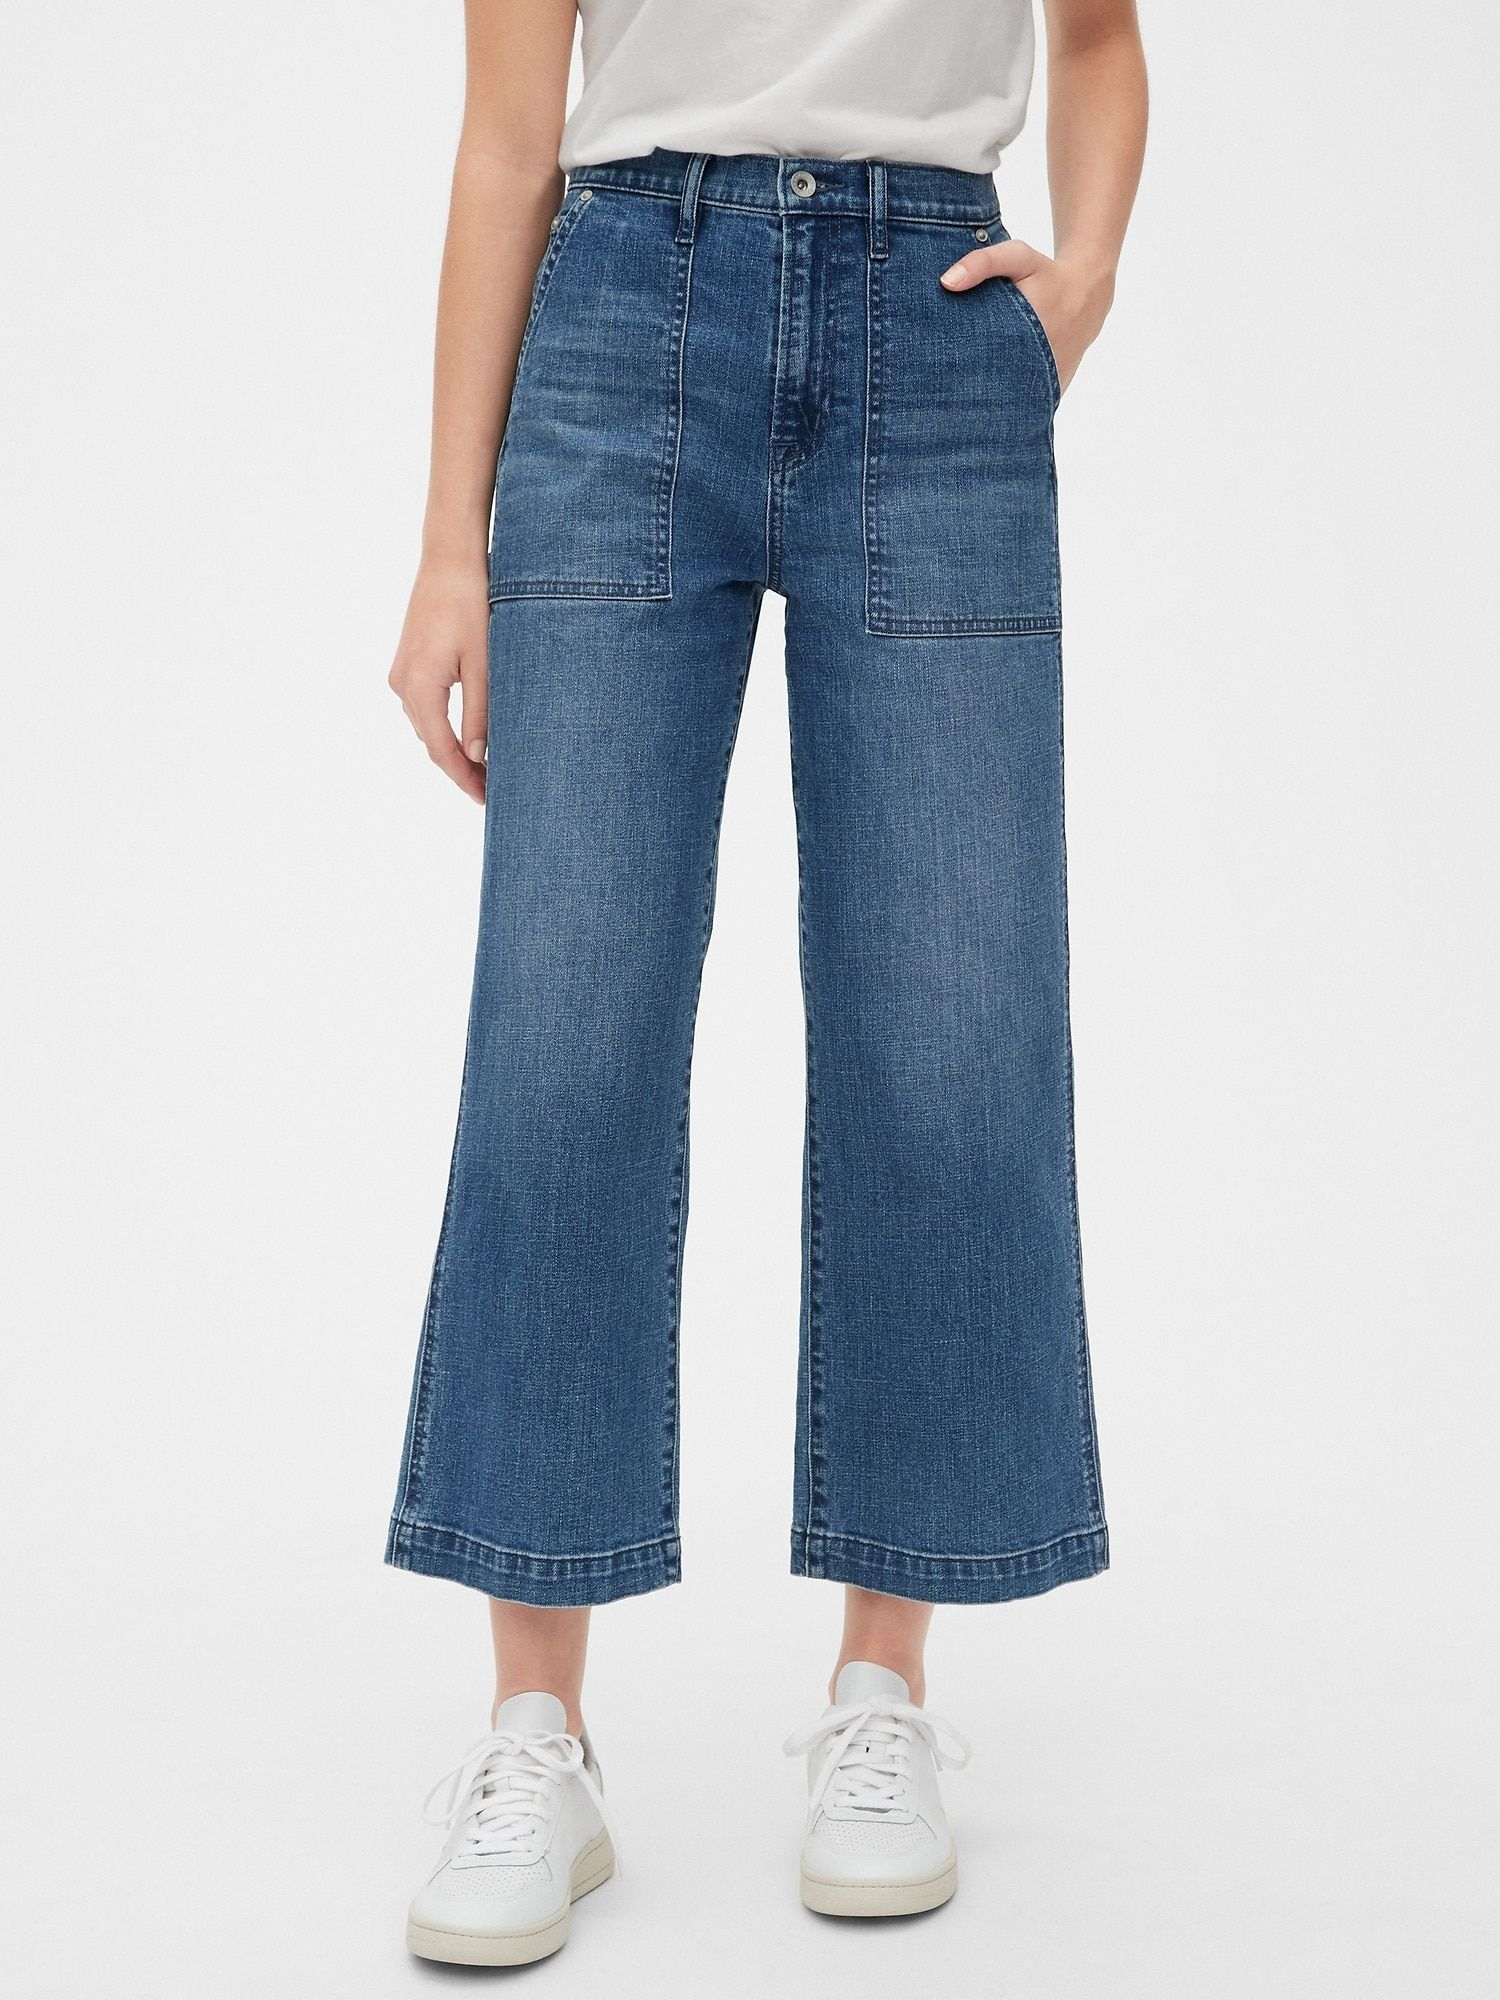 80s Worker High Rise Wide Leg Jeans